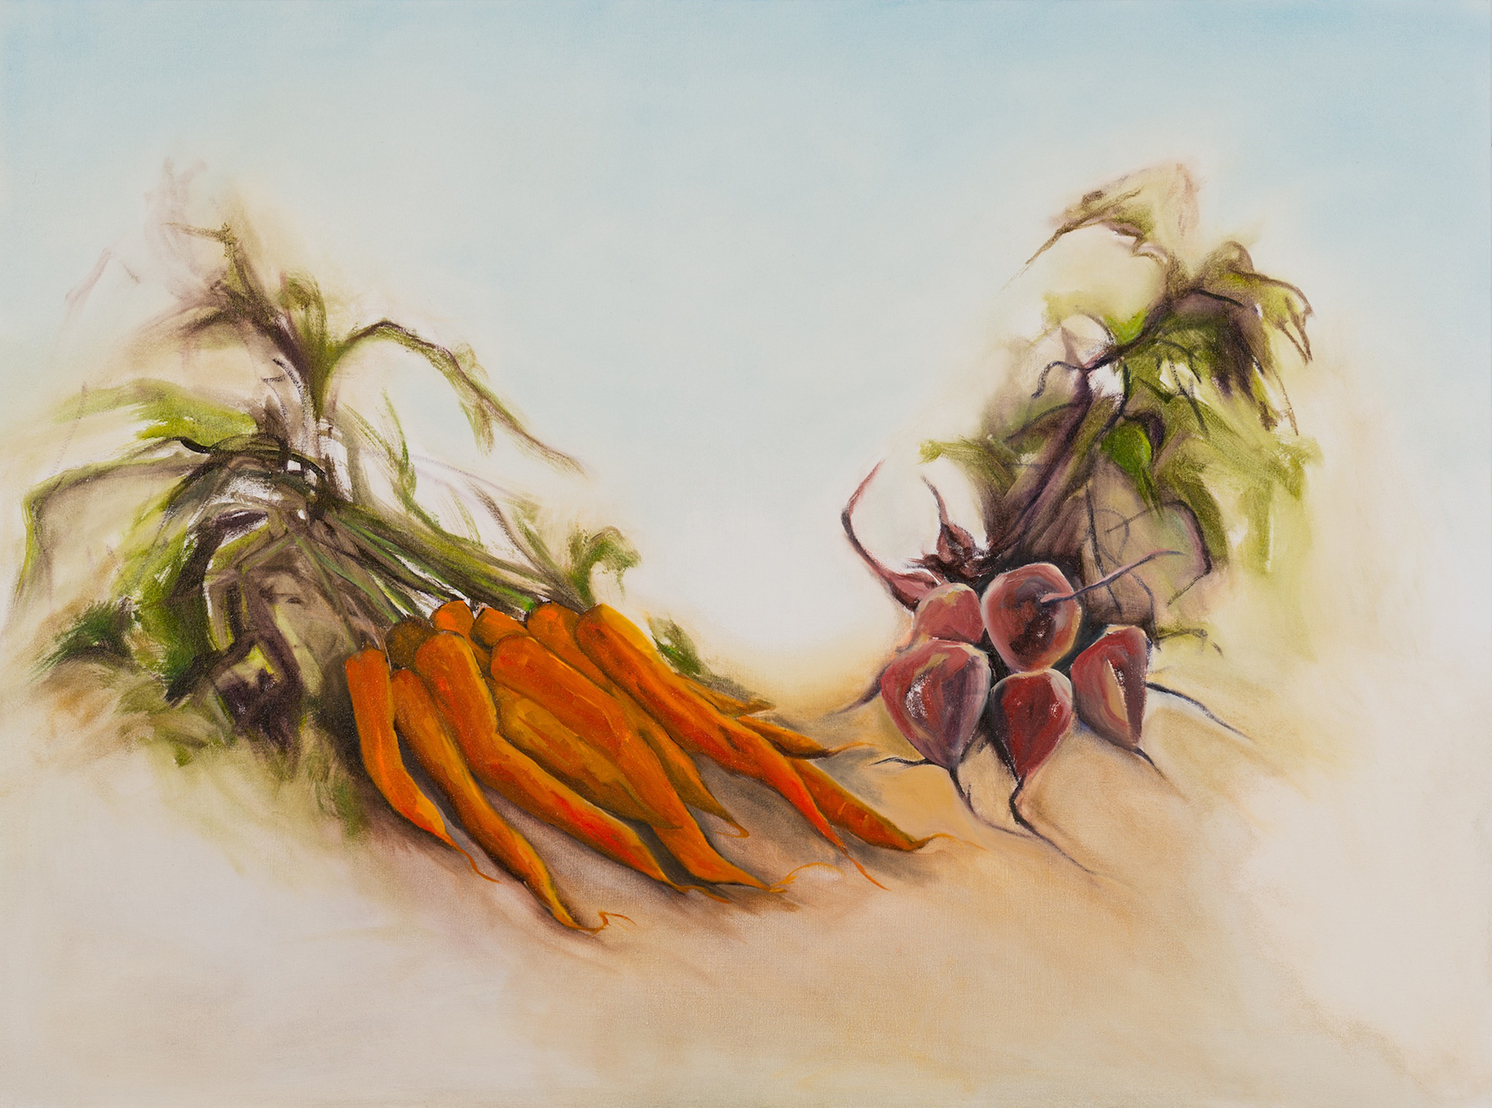 Un-Earthed , 2013, Oil on Canvas, 36 x 48 inches